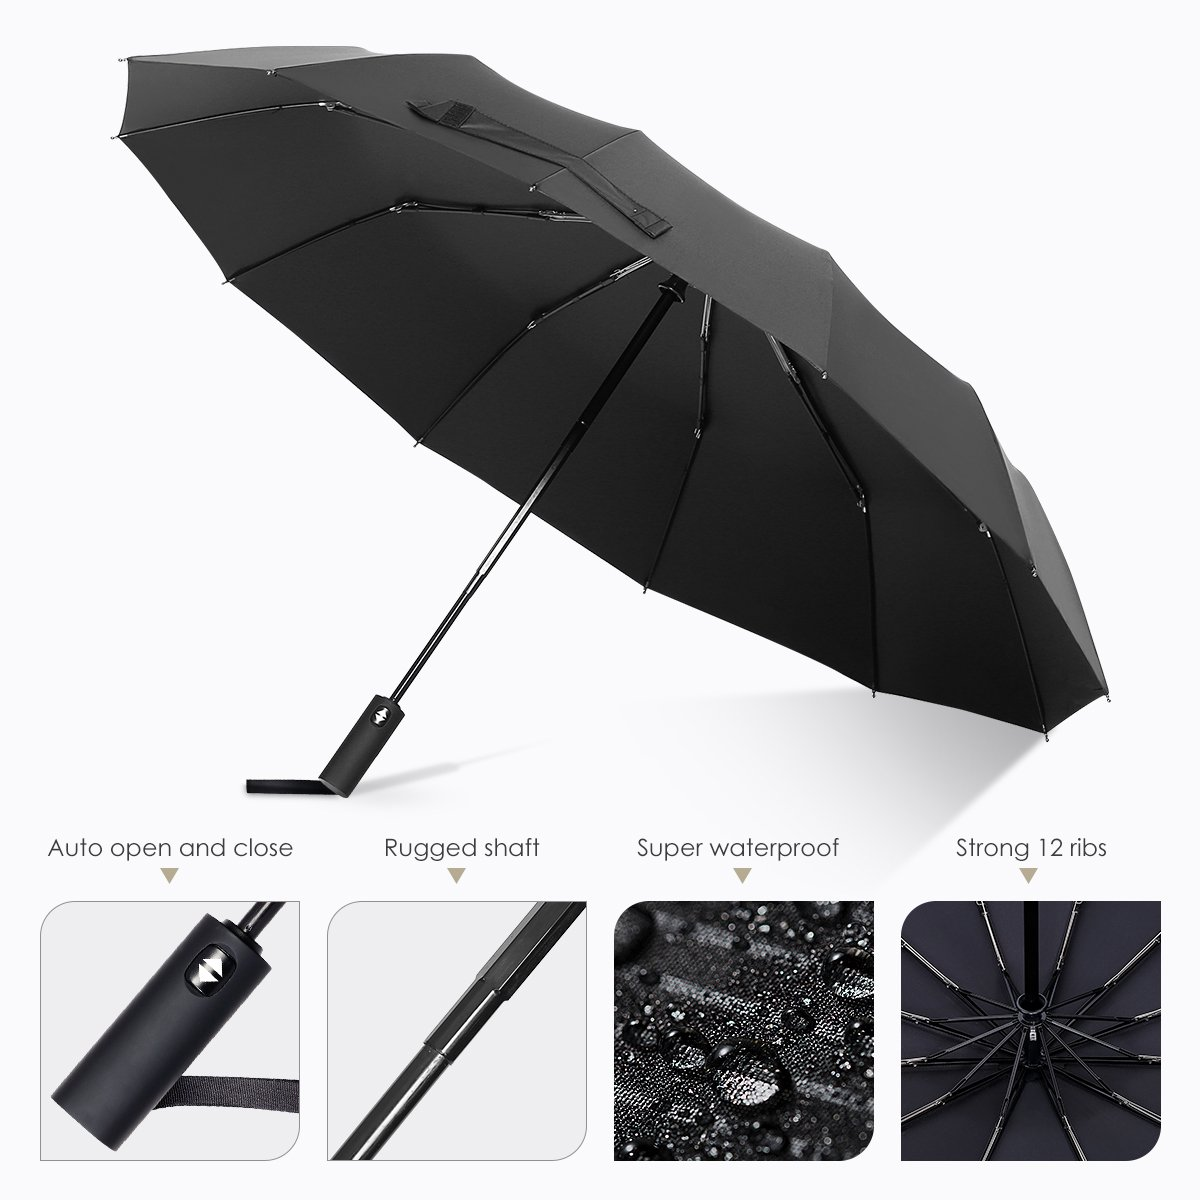 12 Ribs Windproof Travel Umbrella  Teflon Canopy Lengthened Handle With Auto Open Close Button Compact Protection Umbrella